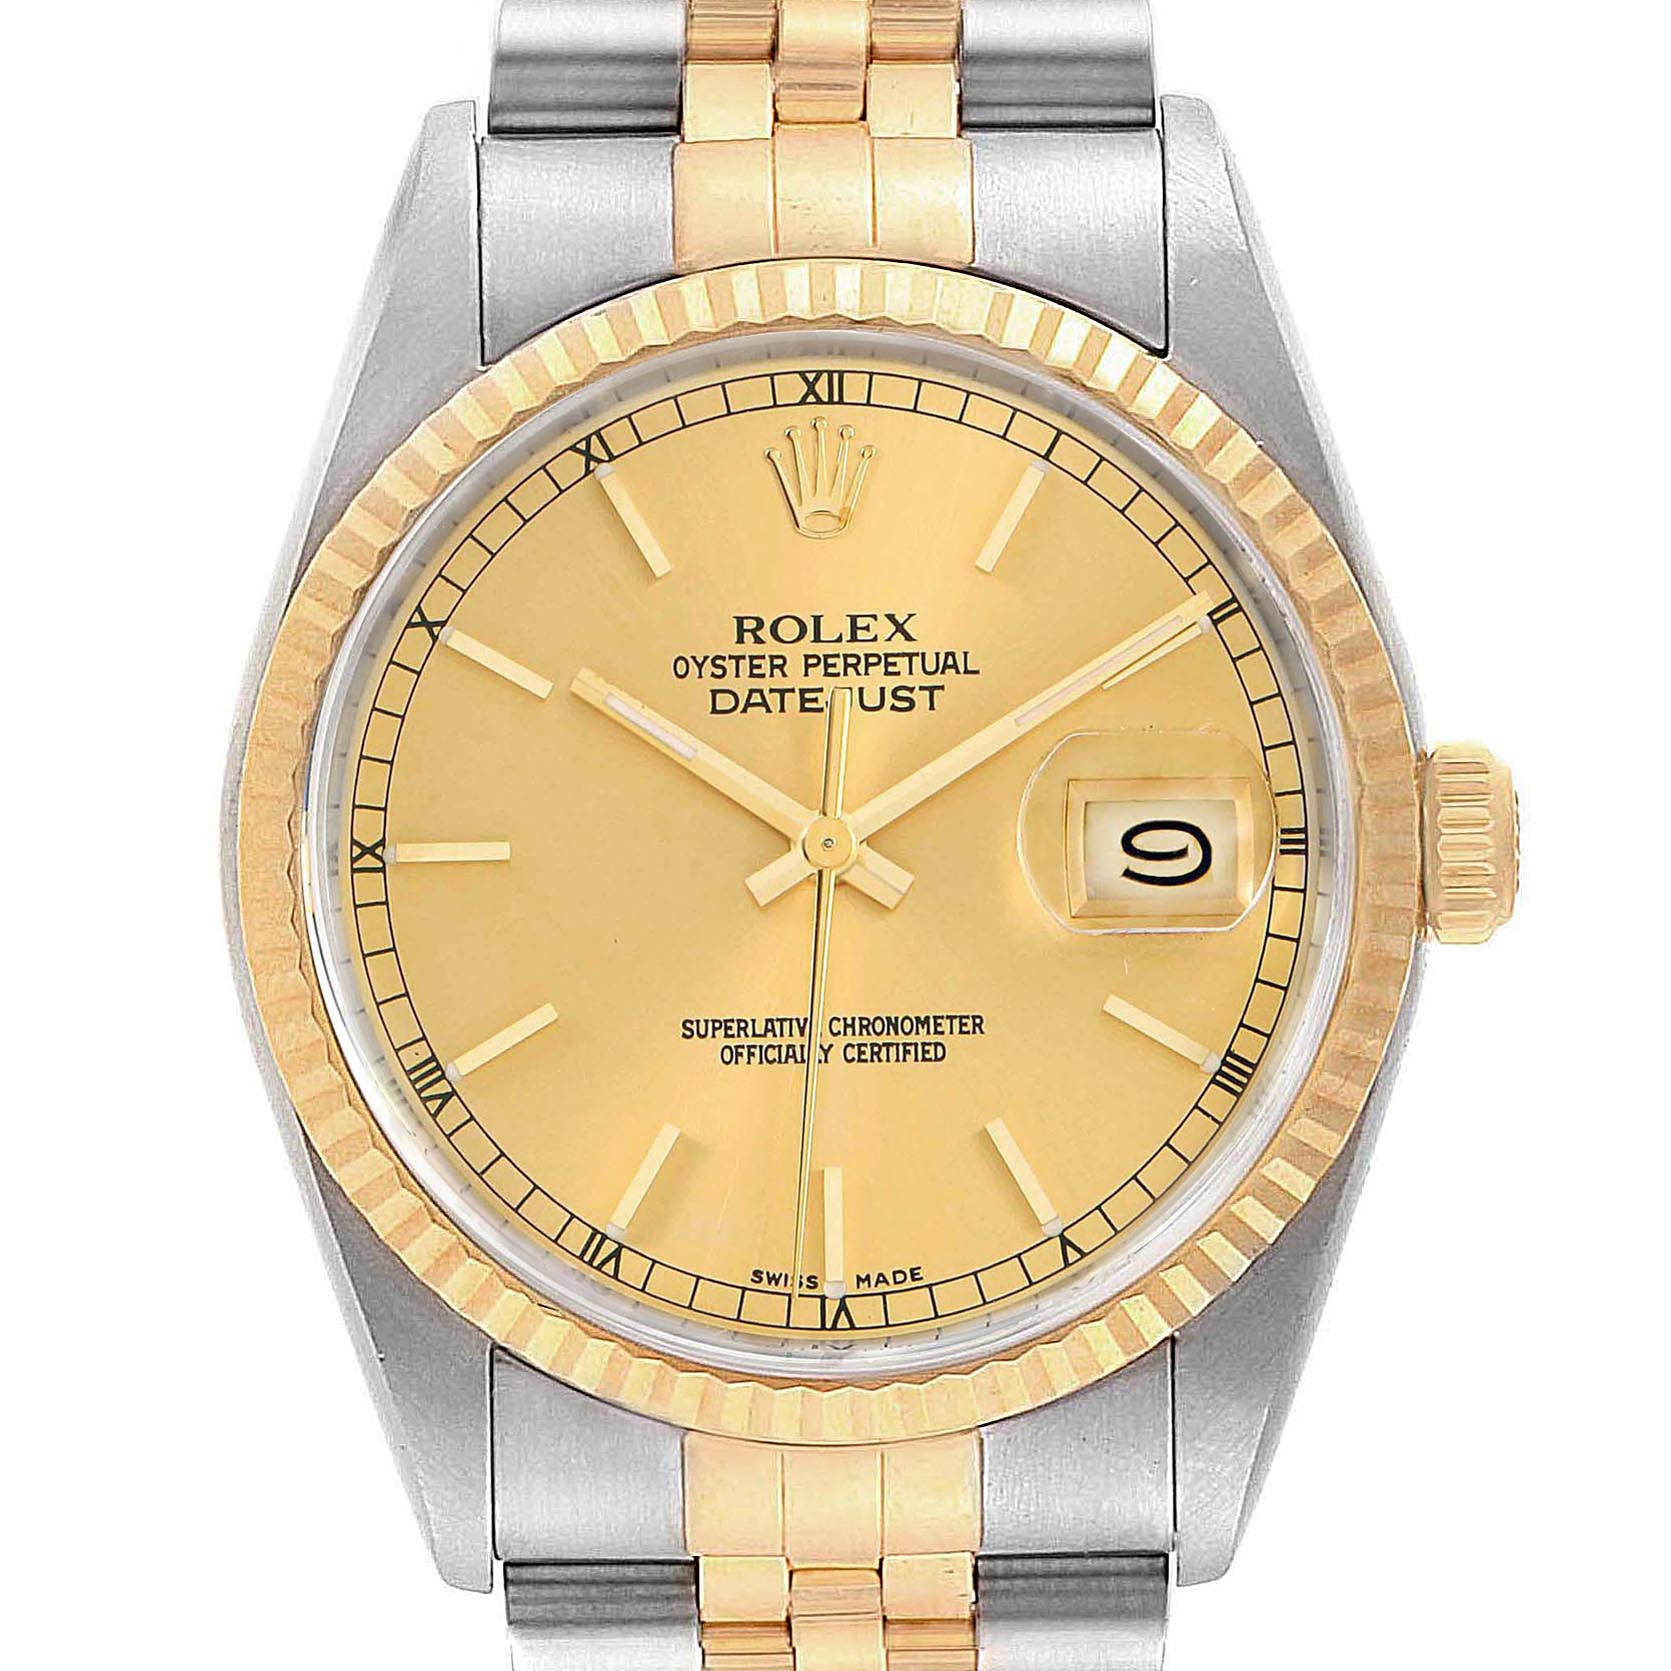 Rolex Datejust 36mm Stainless Steel Yellow Gold Mens Watch 16233 Box